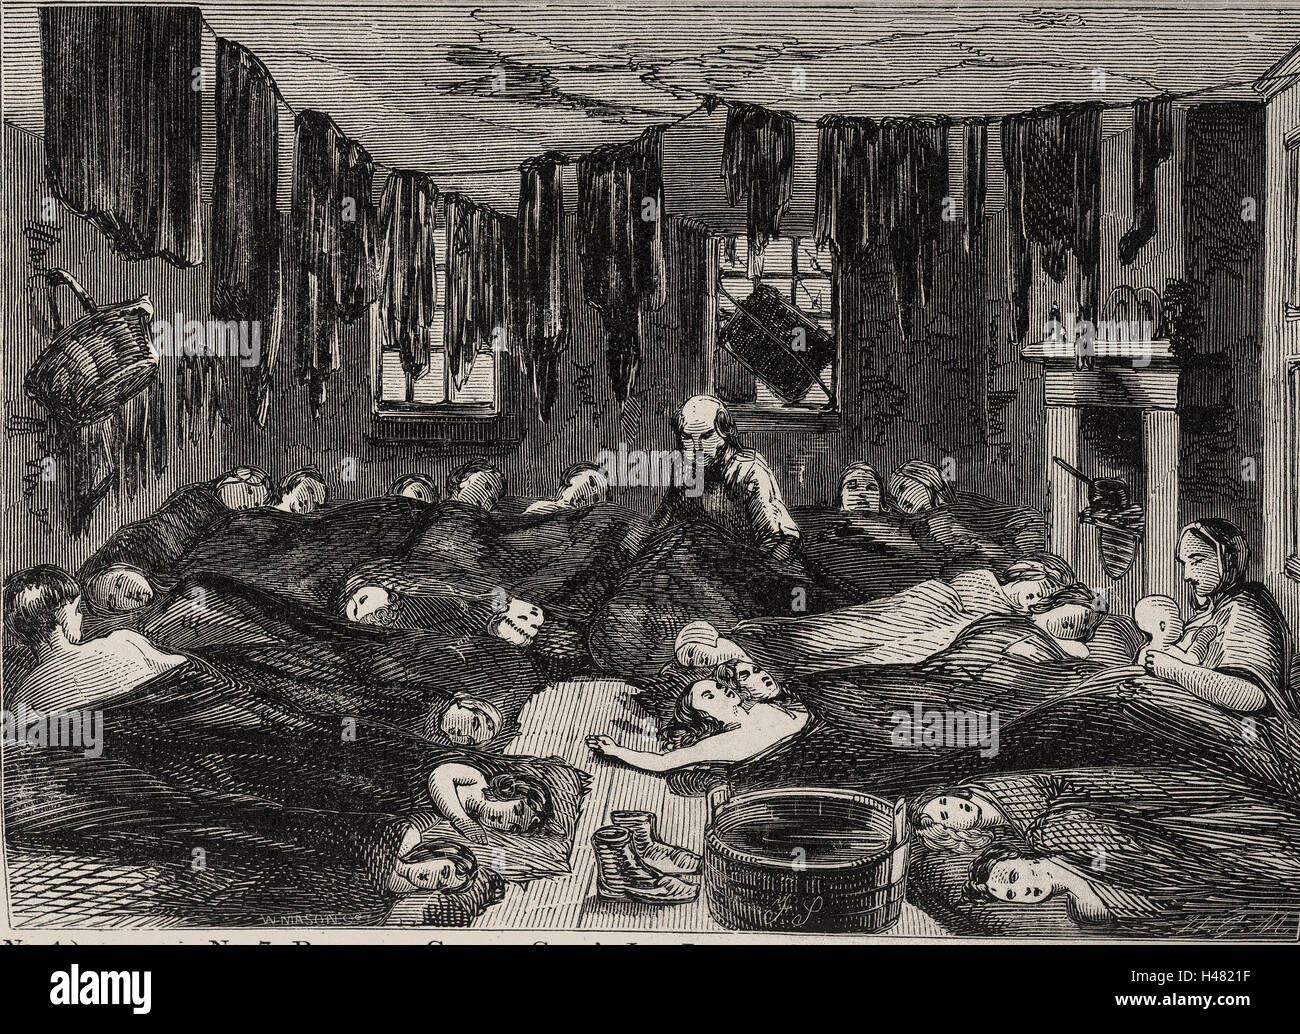 Illustration depicting cramped and squalid housing conditions - Stock Image